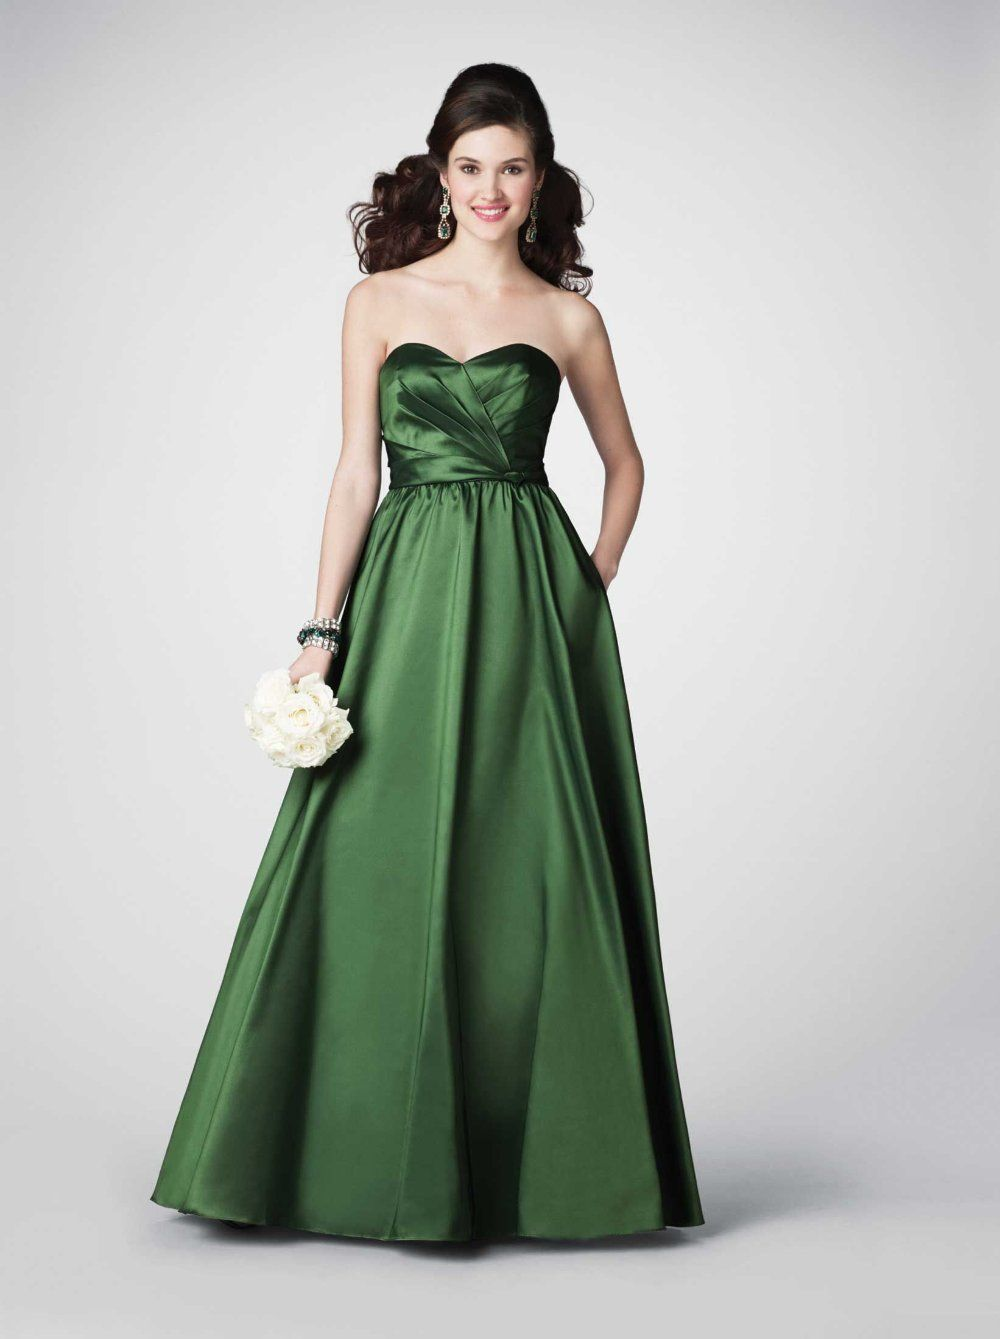 Sweetheart long green taffeta bridesmaid dress green bridesmaid alfred angelo style 7187 bridesmaid dress in ever after ombrellifo Gallery